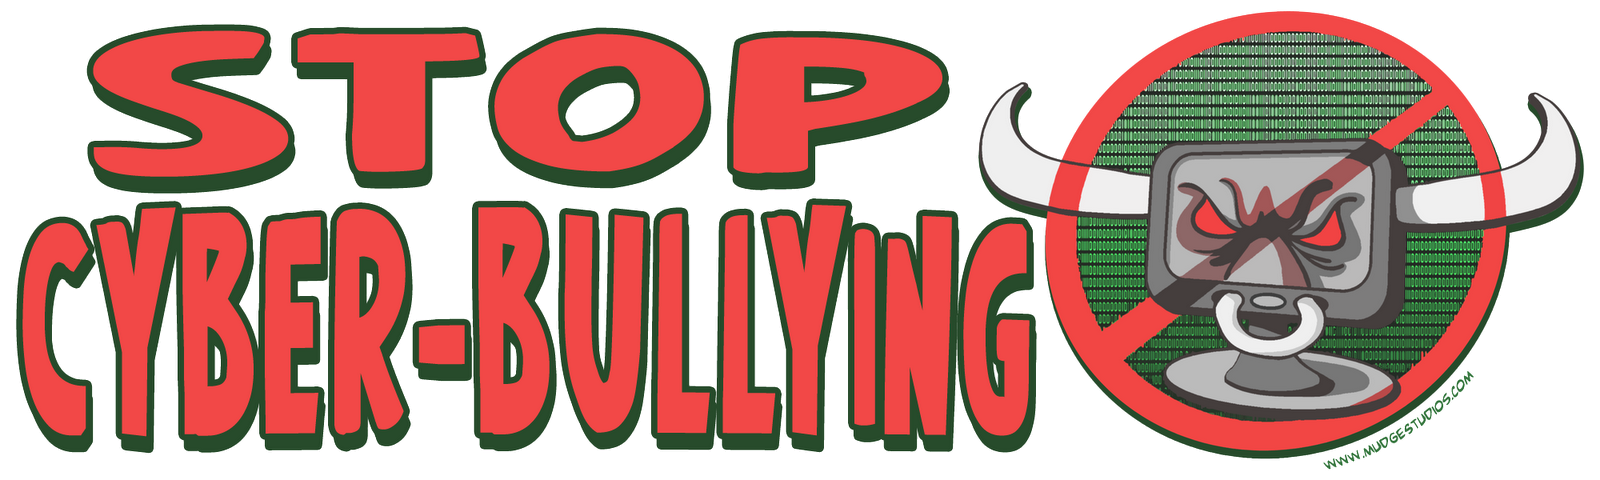 Image detail for stop. Yelling clipart verbal bullying